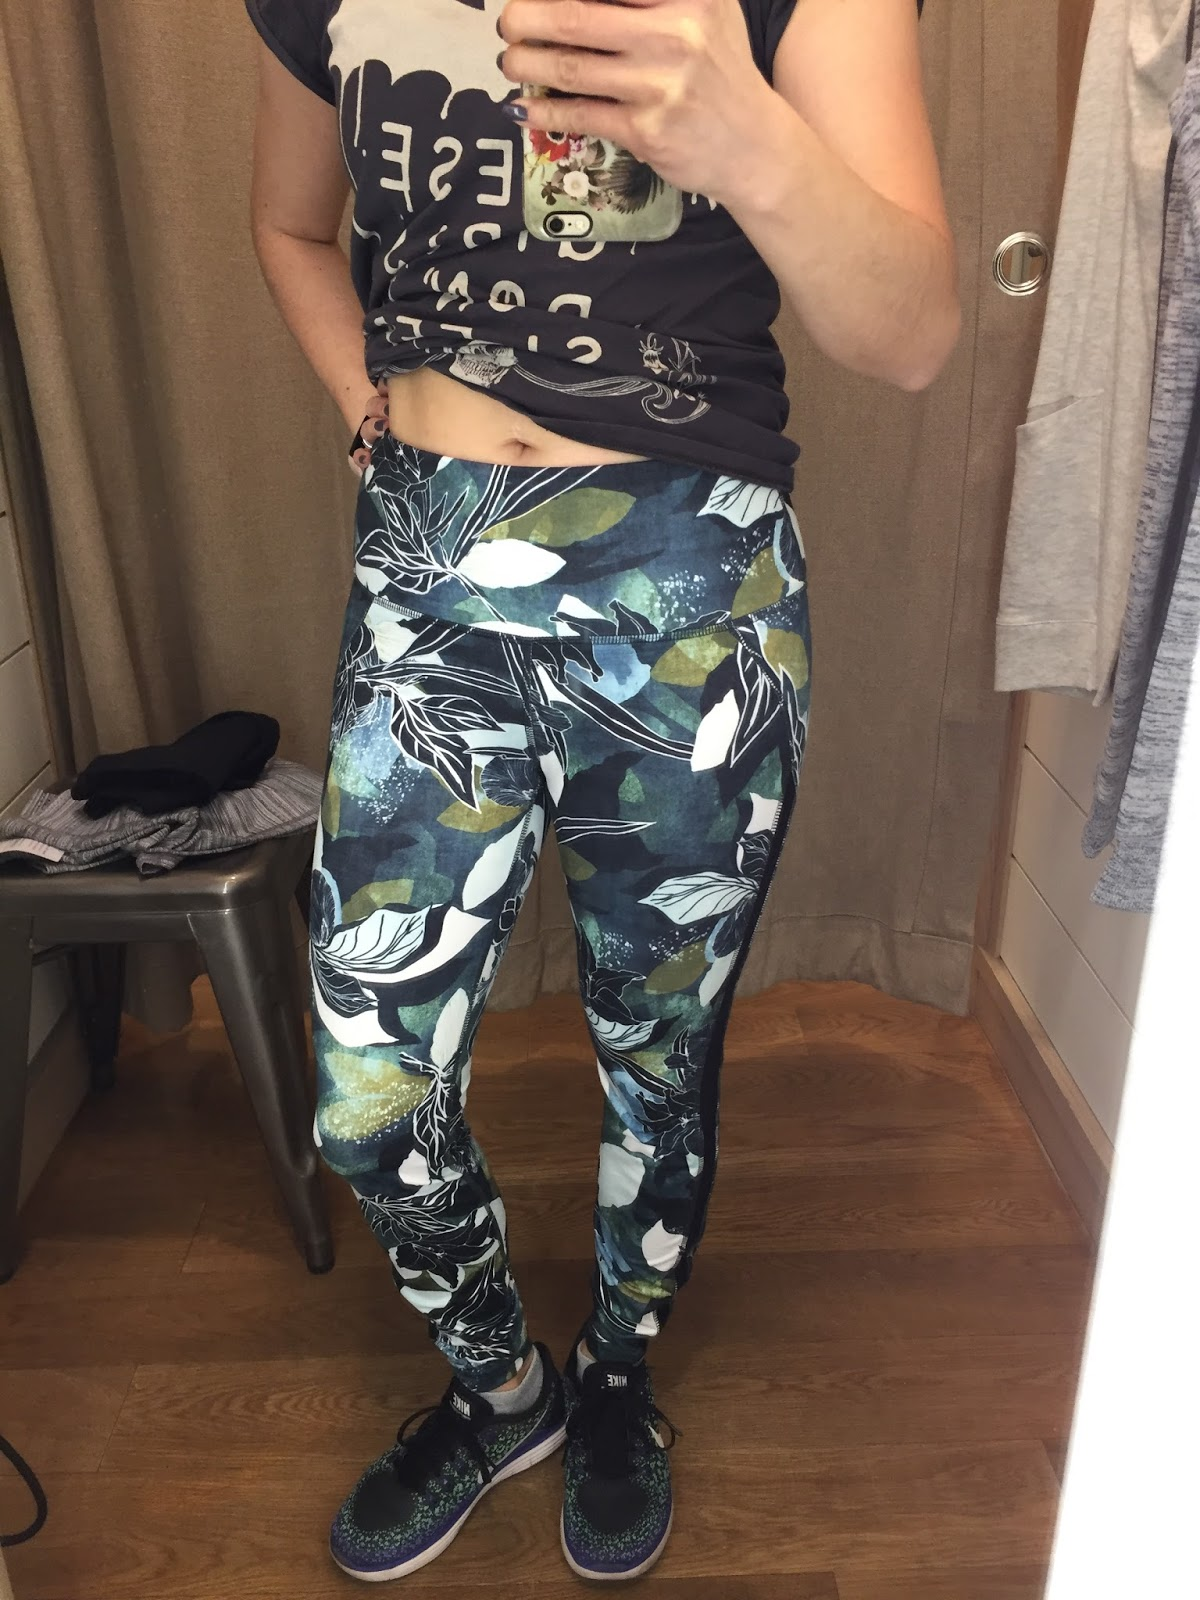 3aab5c13a1507 Petite Impact: Fit Review Friday! Athleta Try Ons! Salutation Capri ...